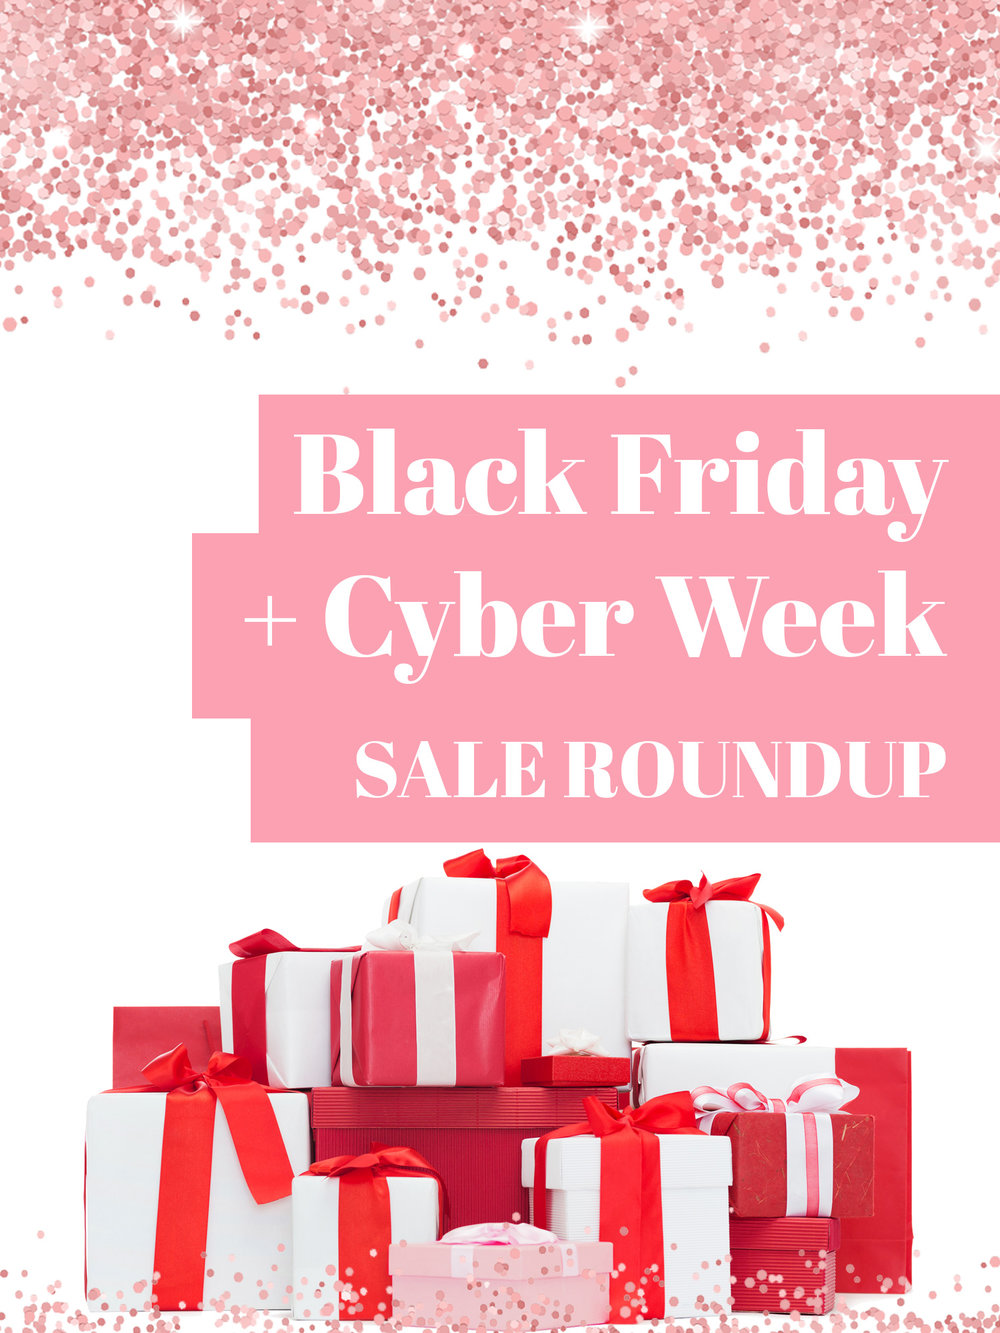 Black Friday + Cyber Week Sales - The Ultimate Roundup